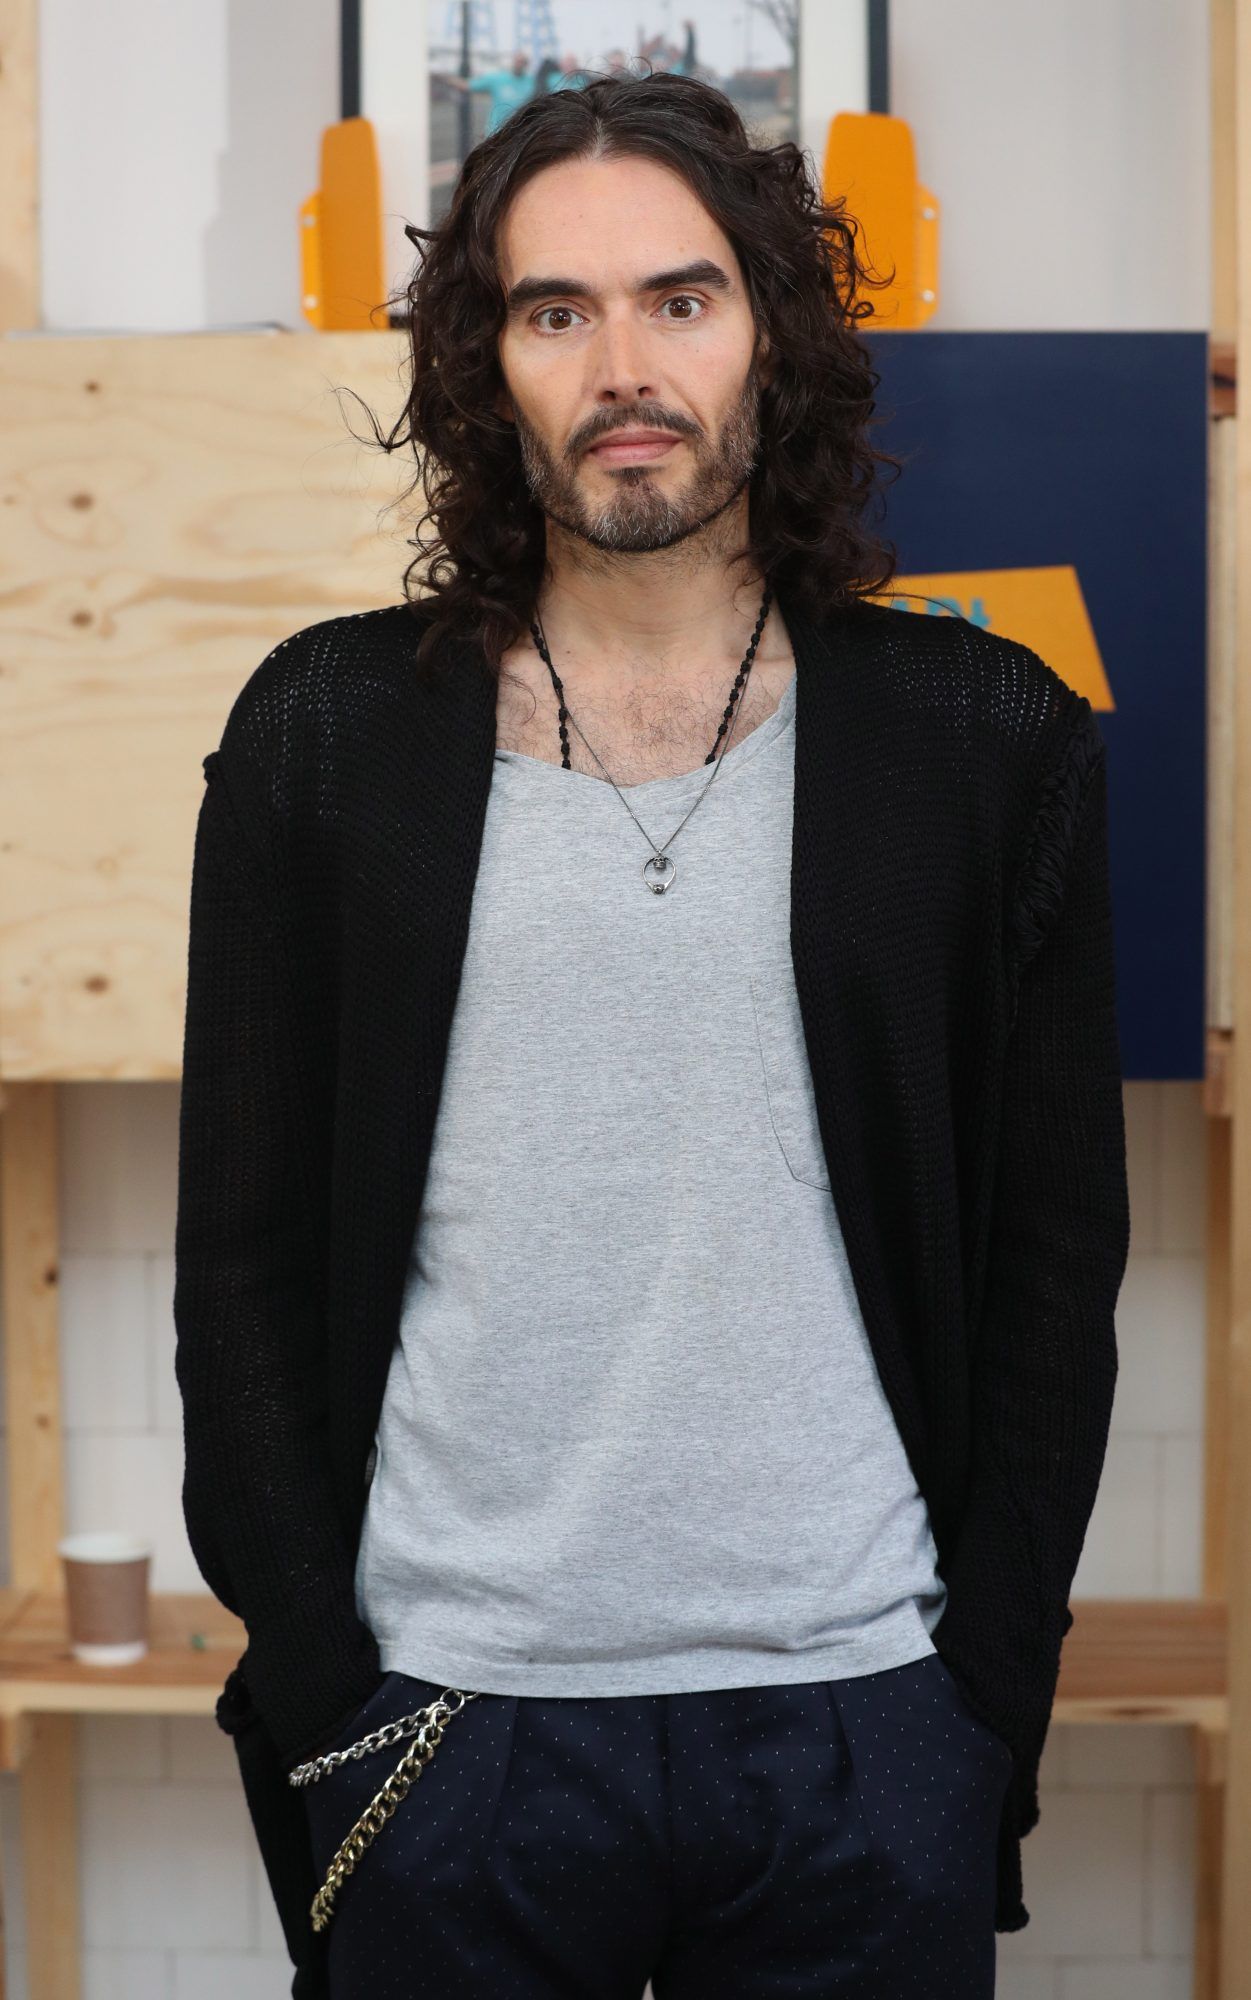 06-russel-brand-celebrity-addiction